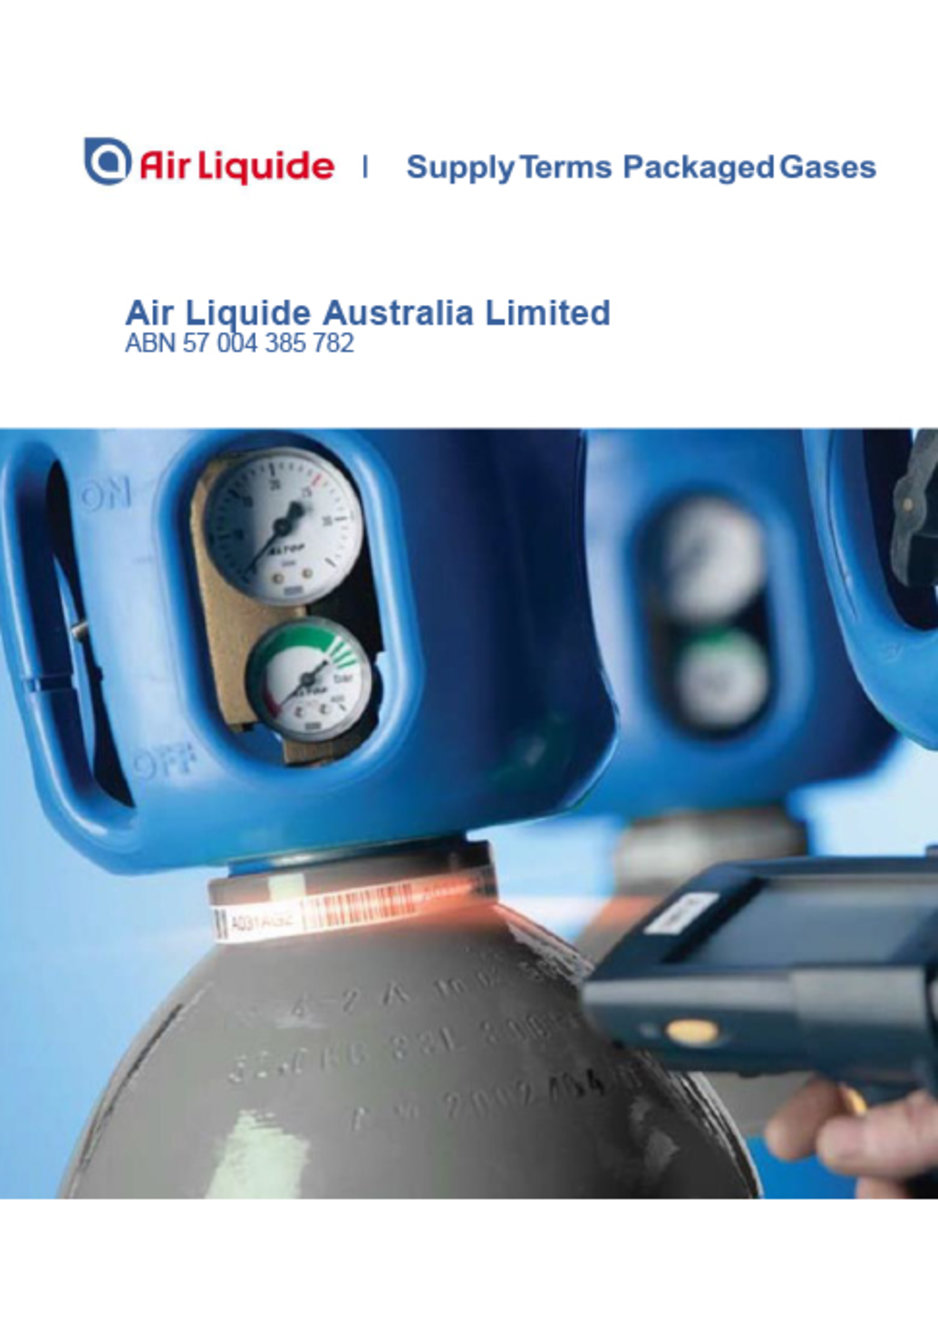 Air Liquide Supply Terms June 2019 cover